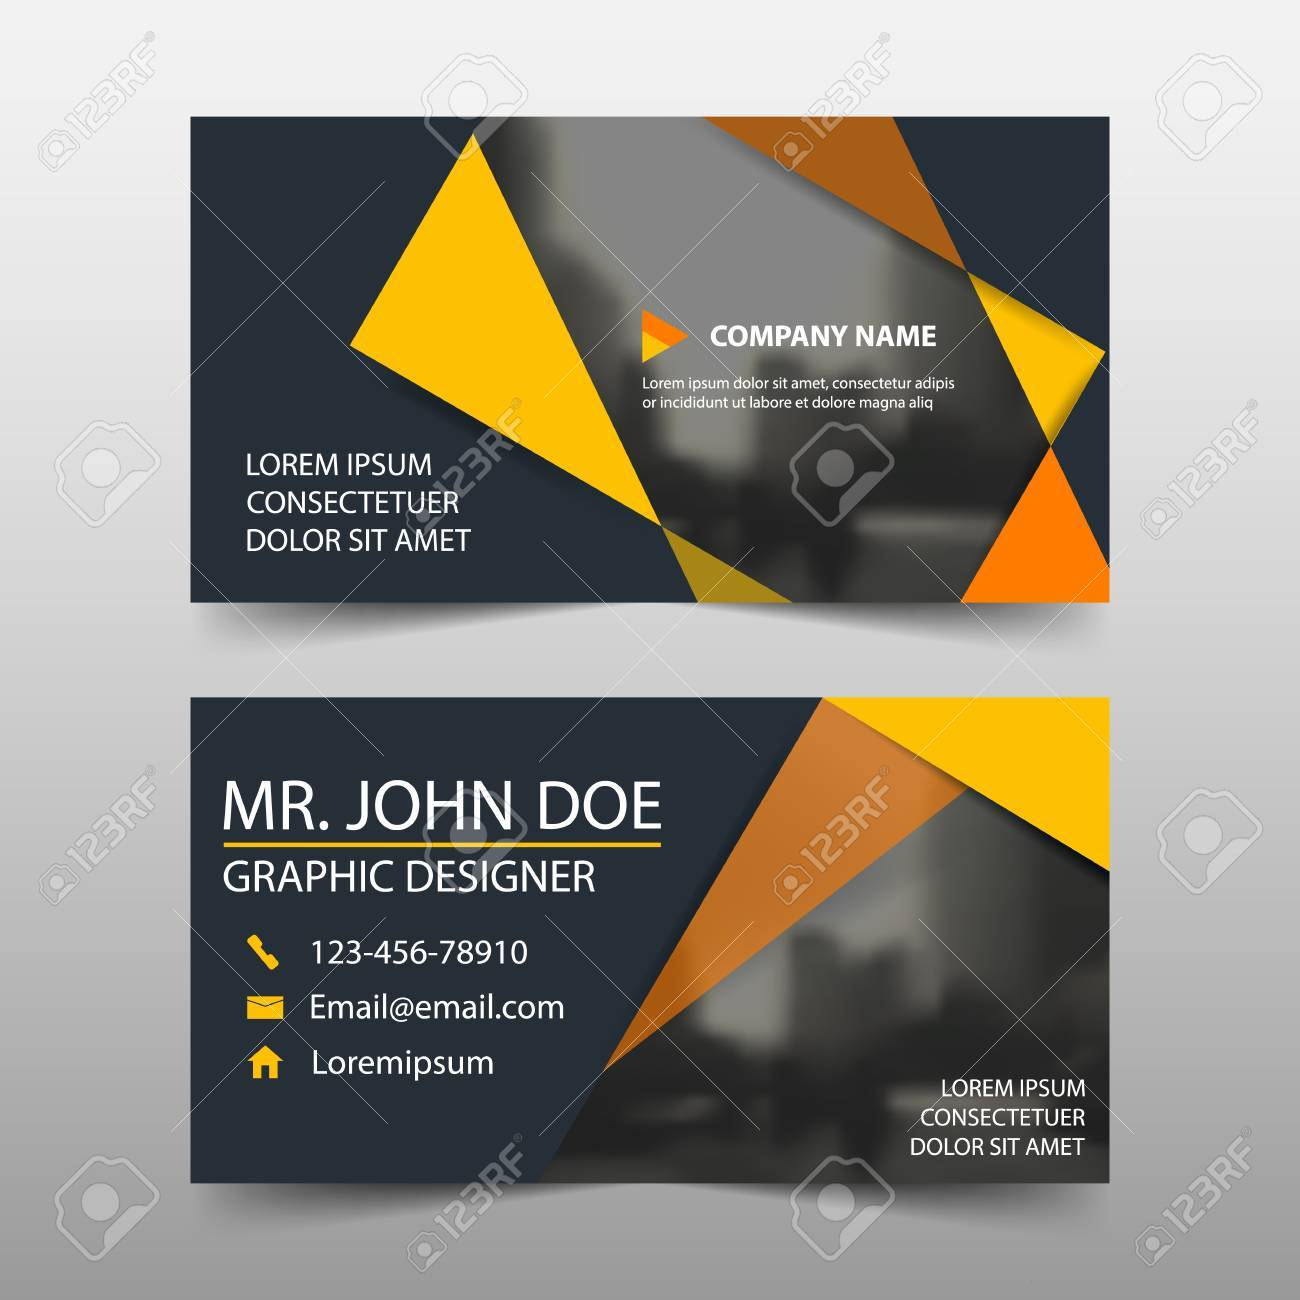 Pressure Washing Business Card Templates Images - Templates ...